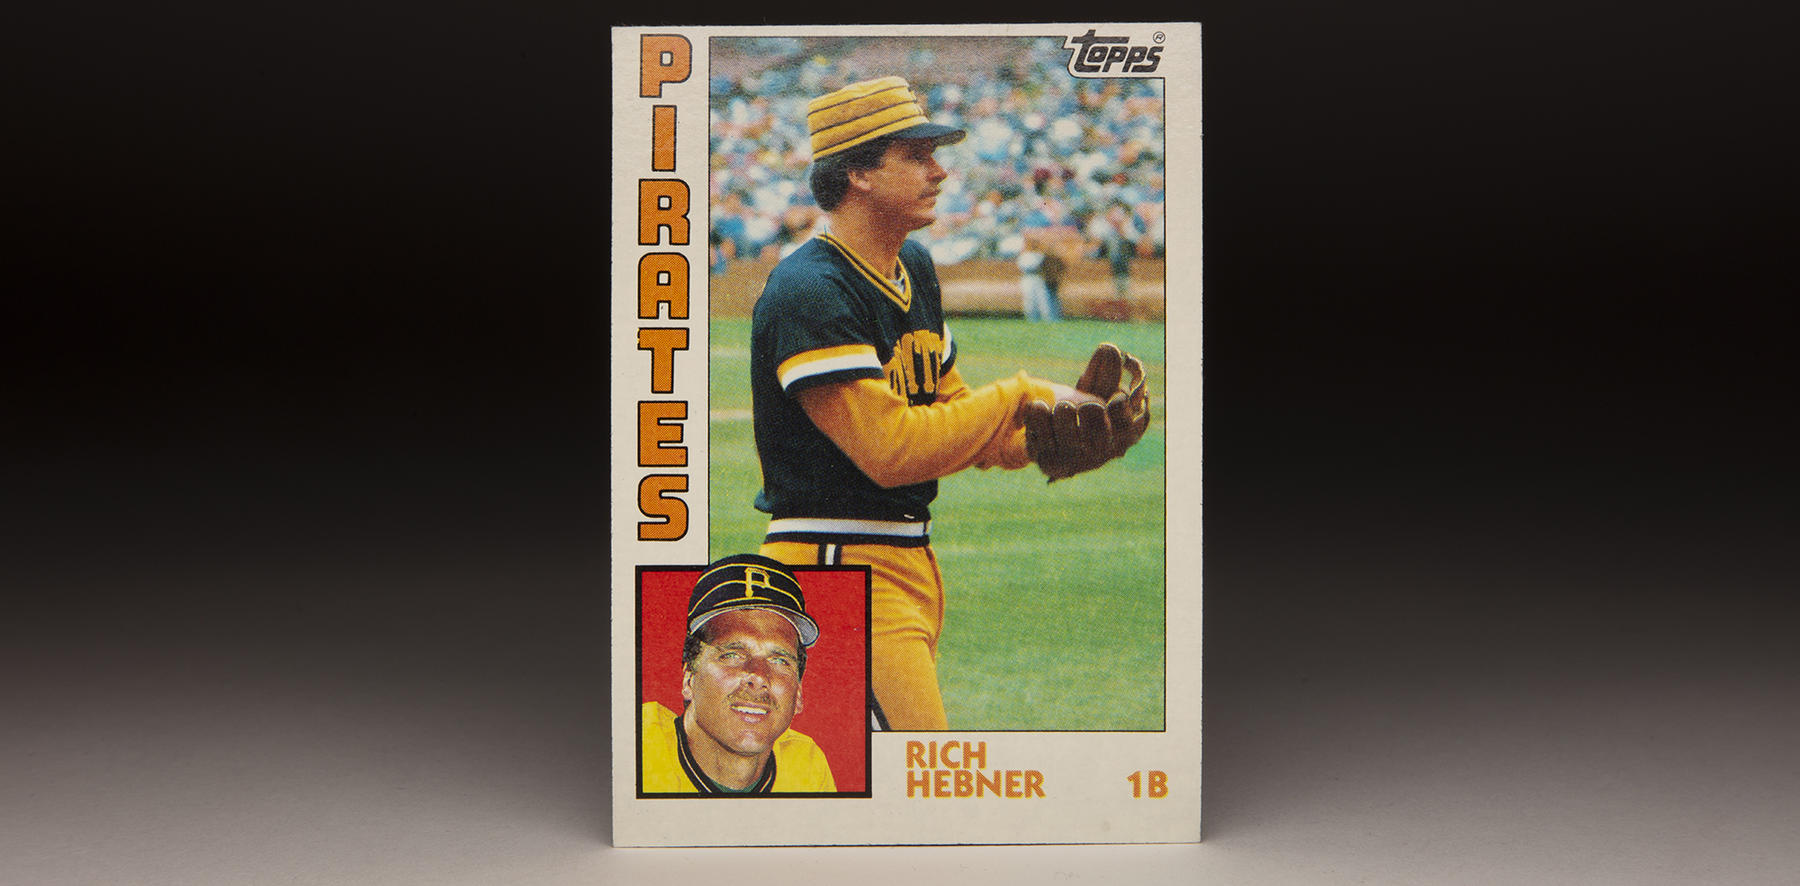 Richie Hebner's 1984 Topps card shows him in his second stint with the Pittsburgh Pirates. (Topps baseball card photographed by Milo Stewart Jr./National Baseball Hall of Fame and Museum)